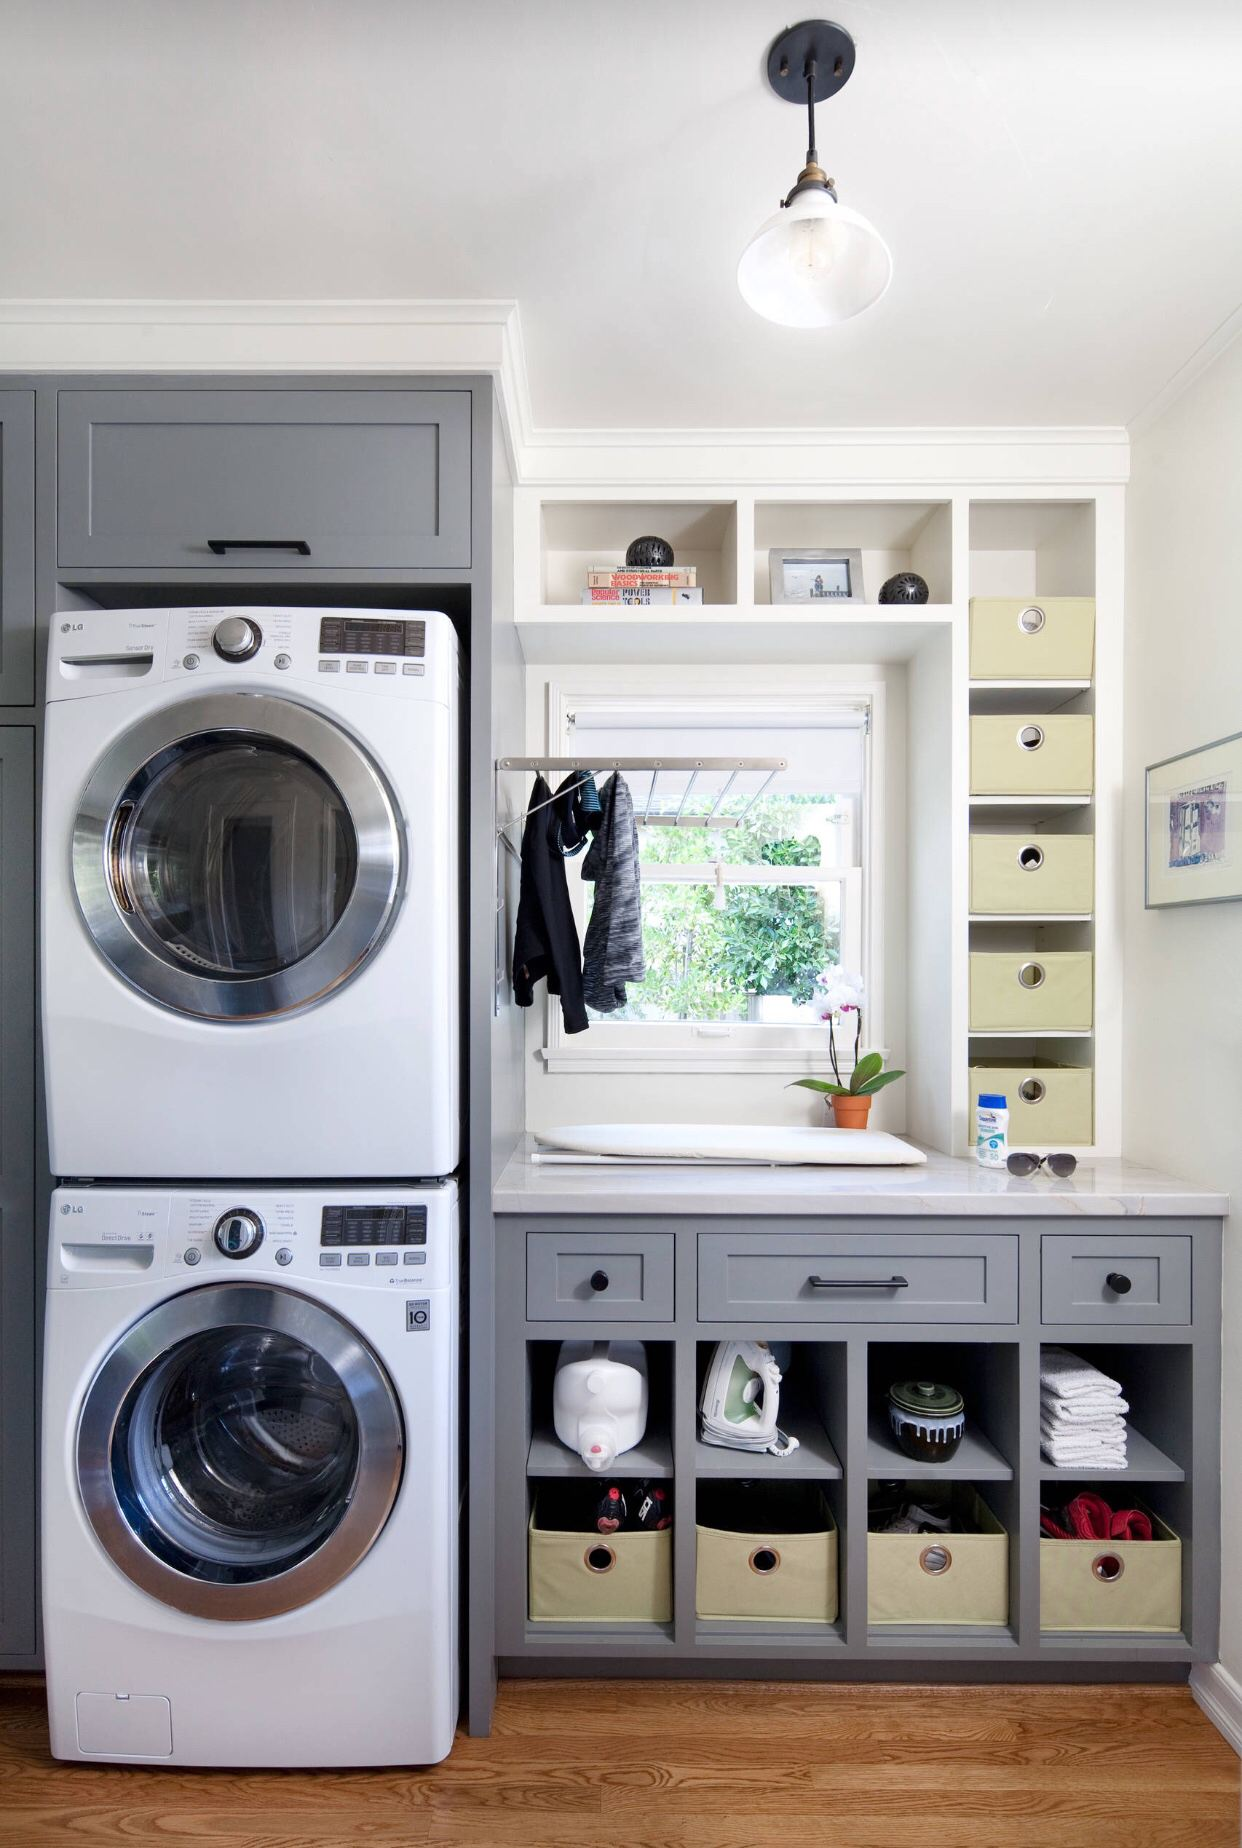 50 Beautiful and Functional Laundry Room Ideas   Homelovr on Small Laundry Room Cabinets  id=46030